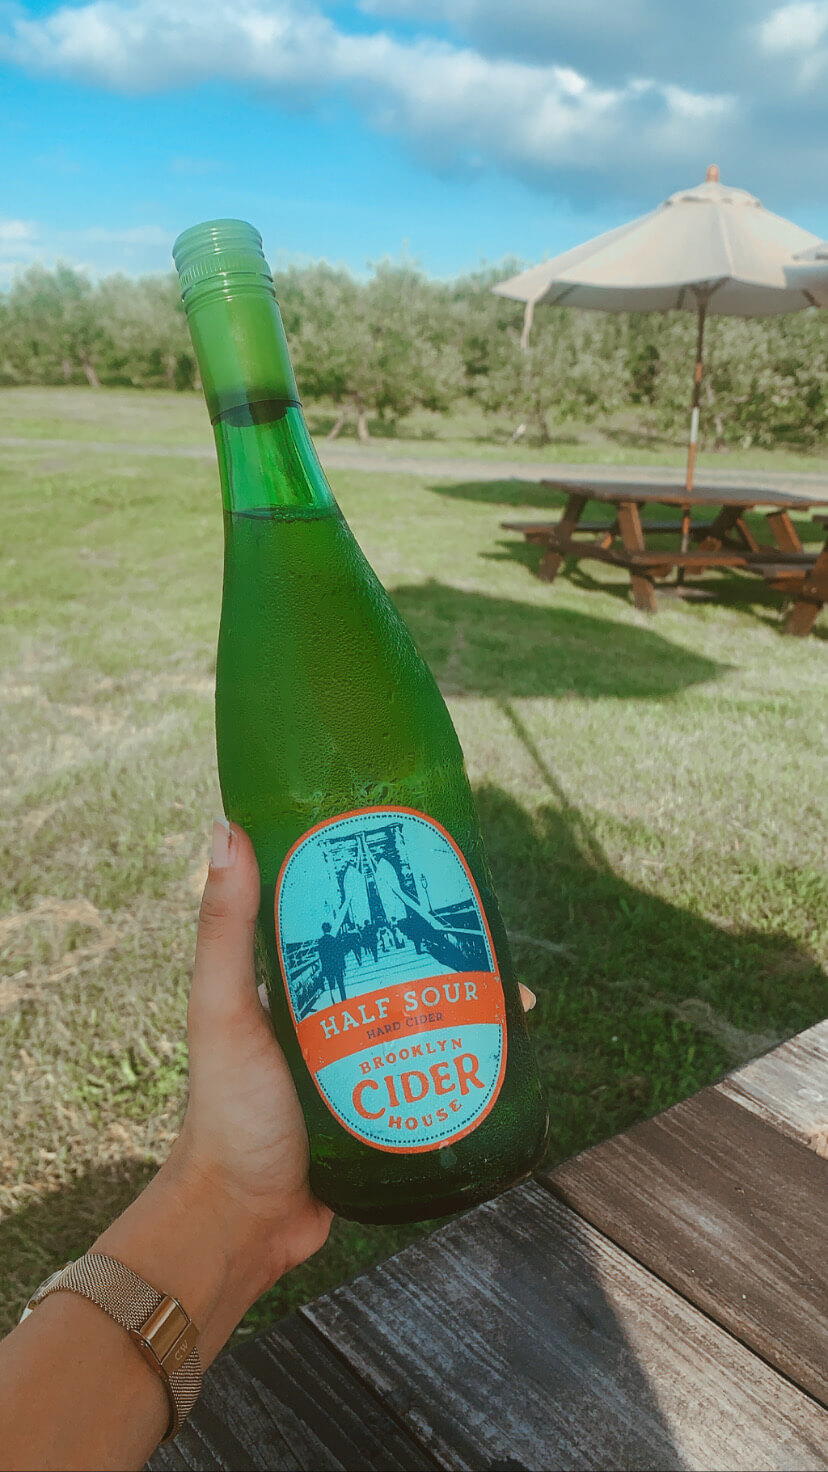 bottle of cider from Brooklyn Cider House in New Paltz, NY